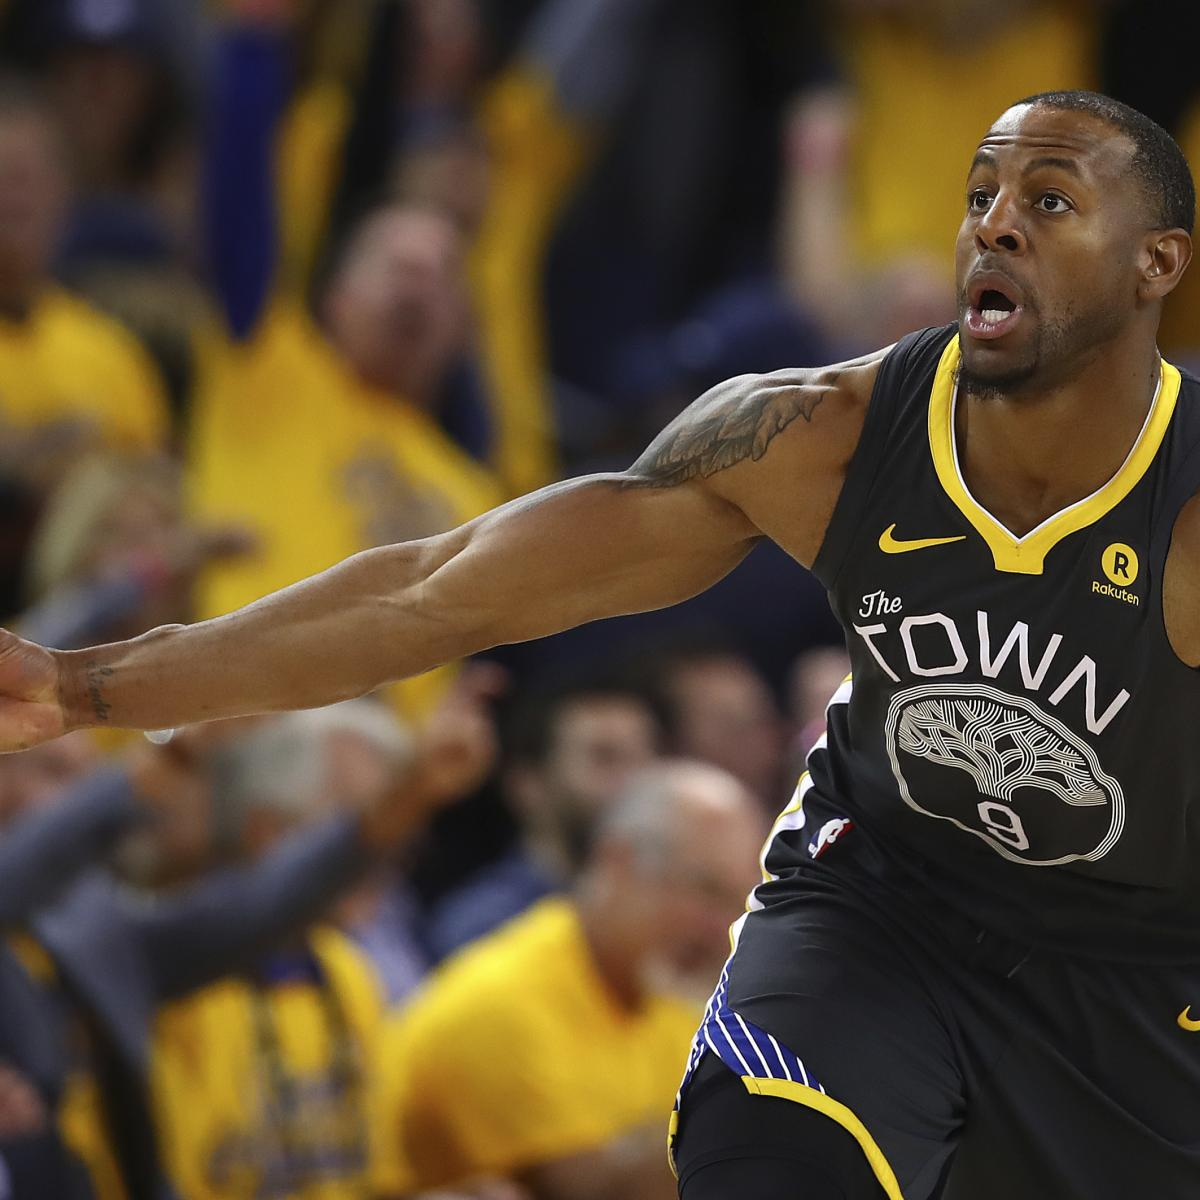 Warriors Vs Rockets Lineup: Andre Iguodala, Kevon Looney Listed As Questionable For